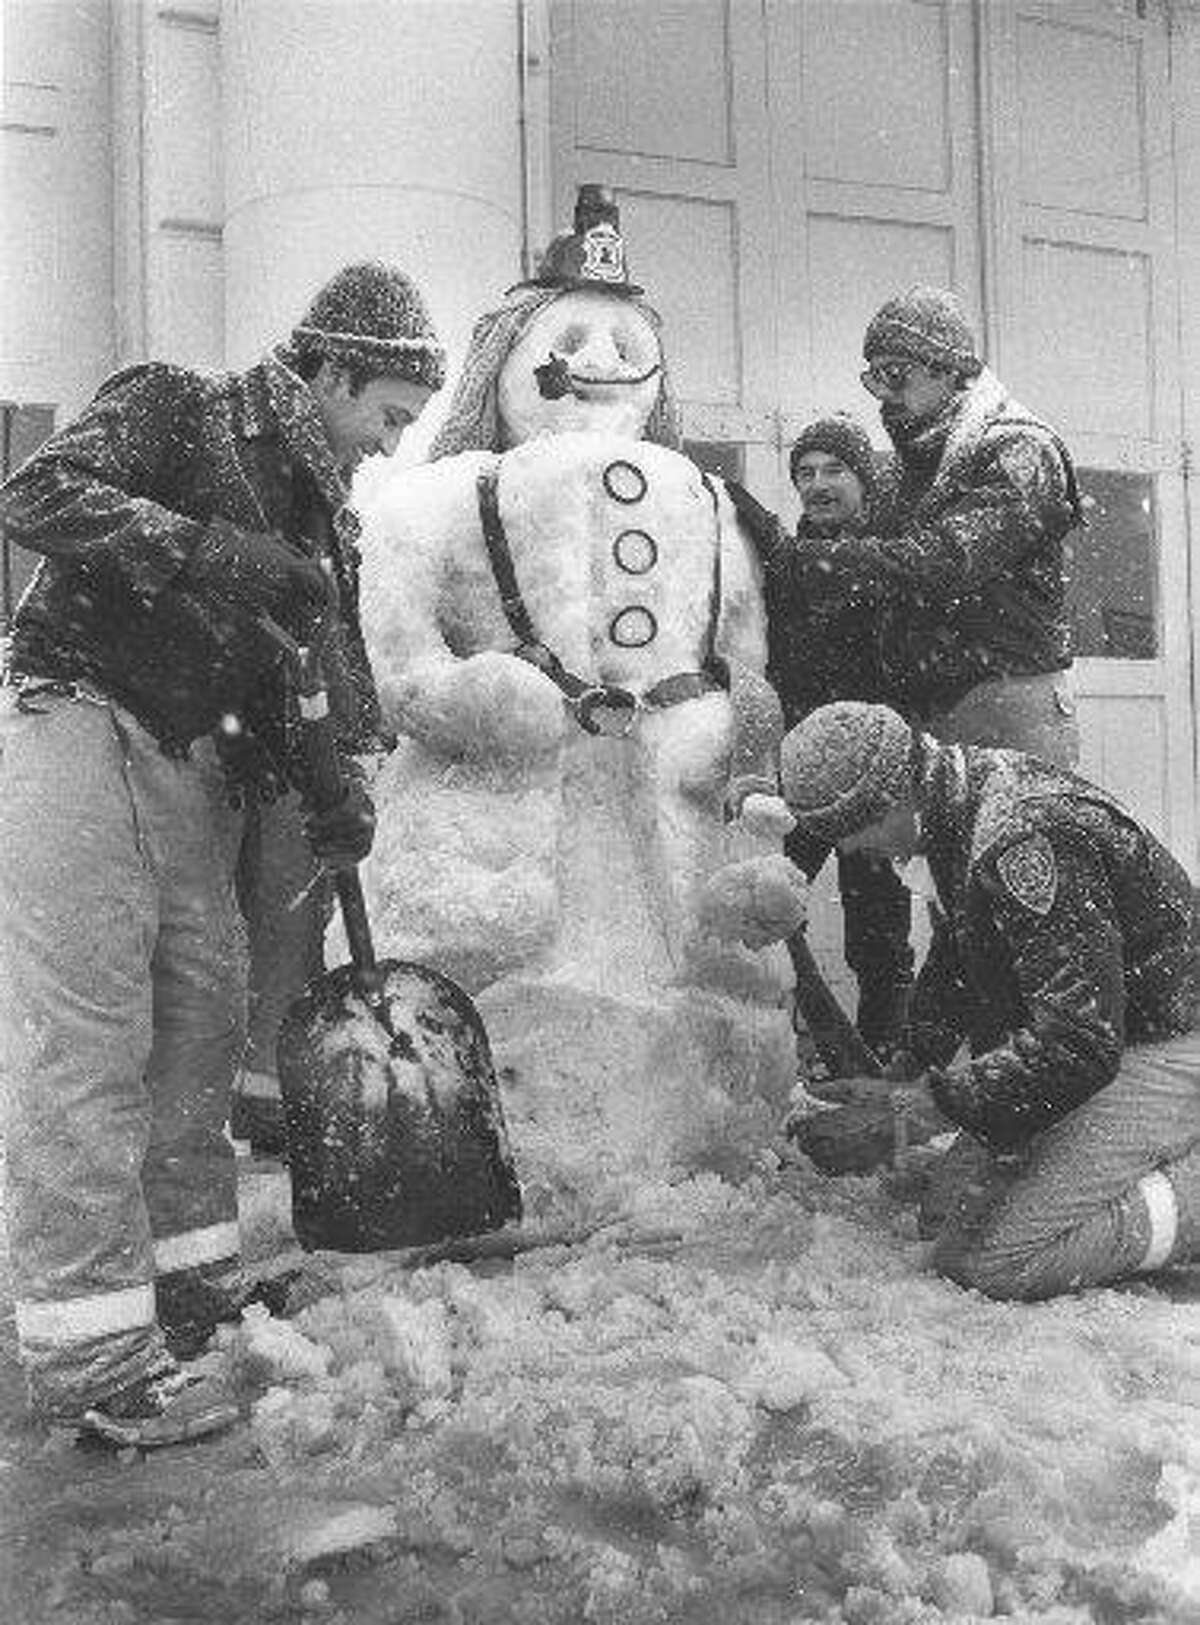 Firefighters from Fire Station No. 1's day shift make a snowman on Jan. 12, 1985.